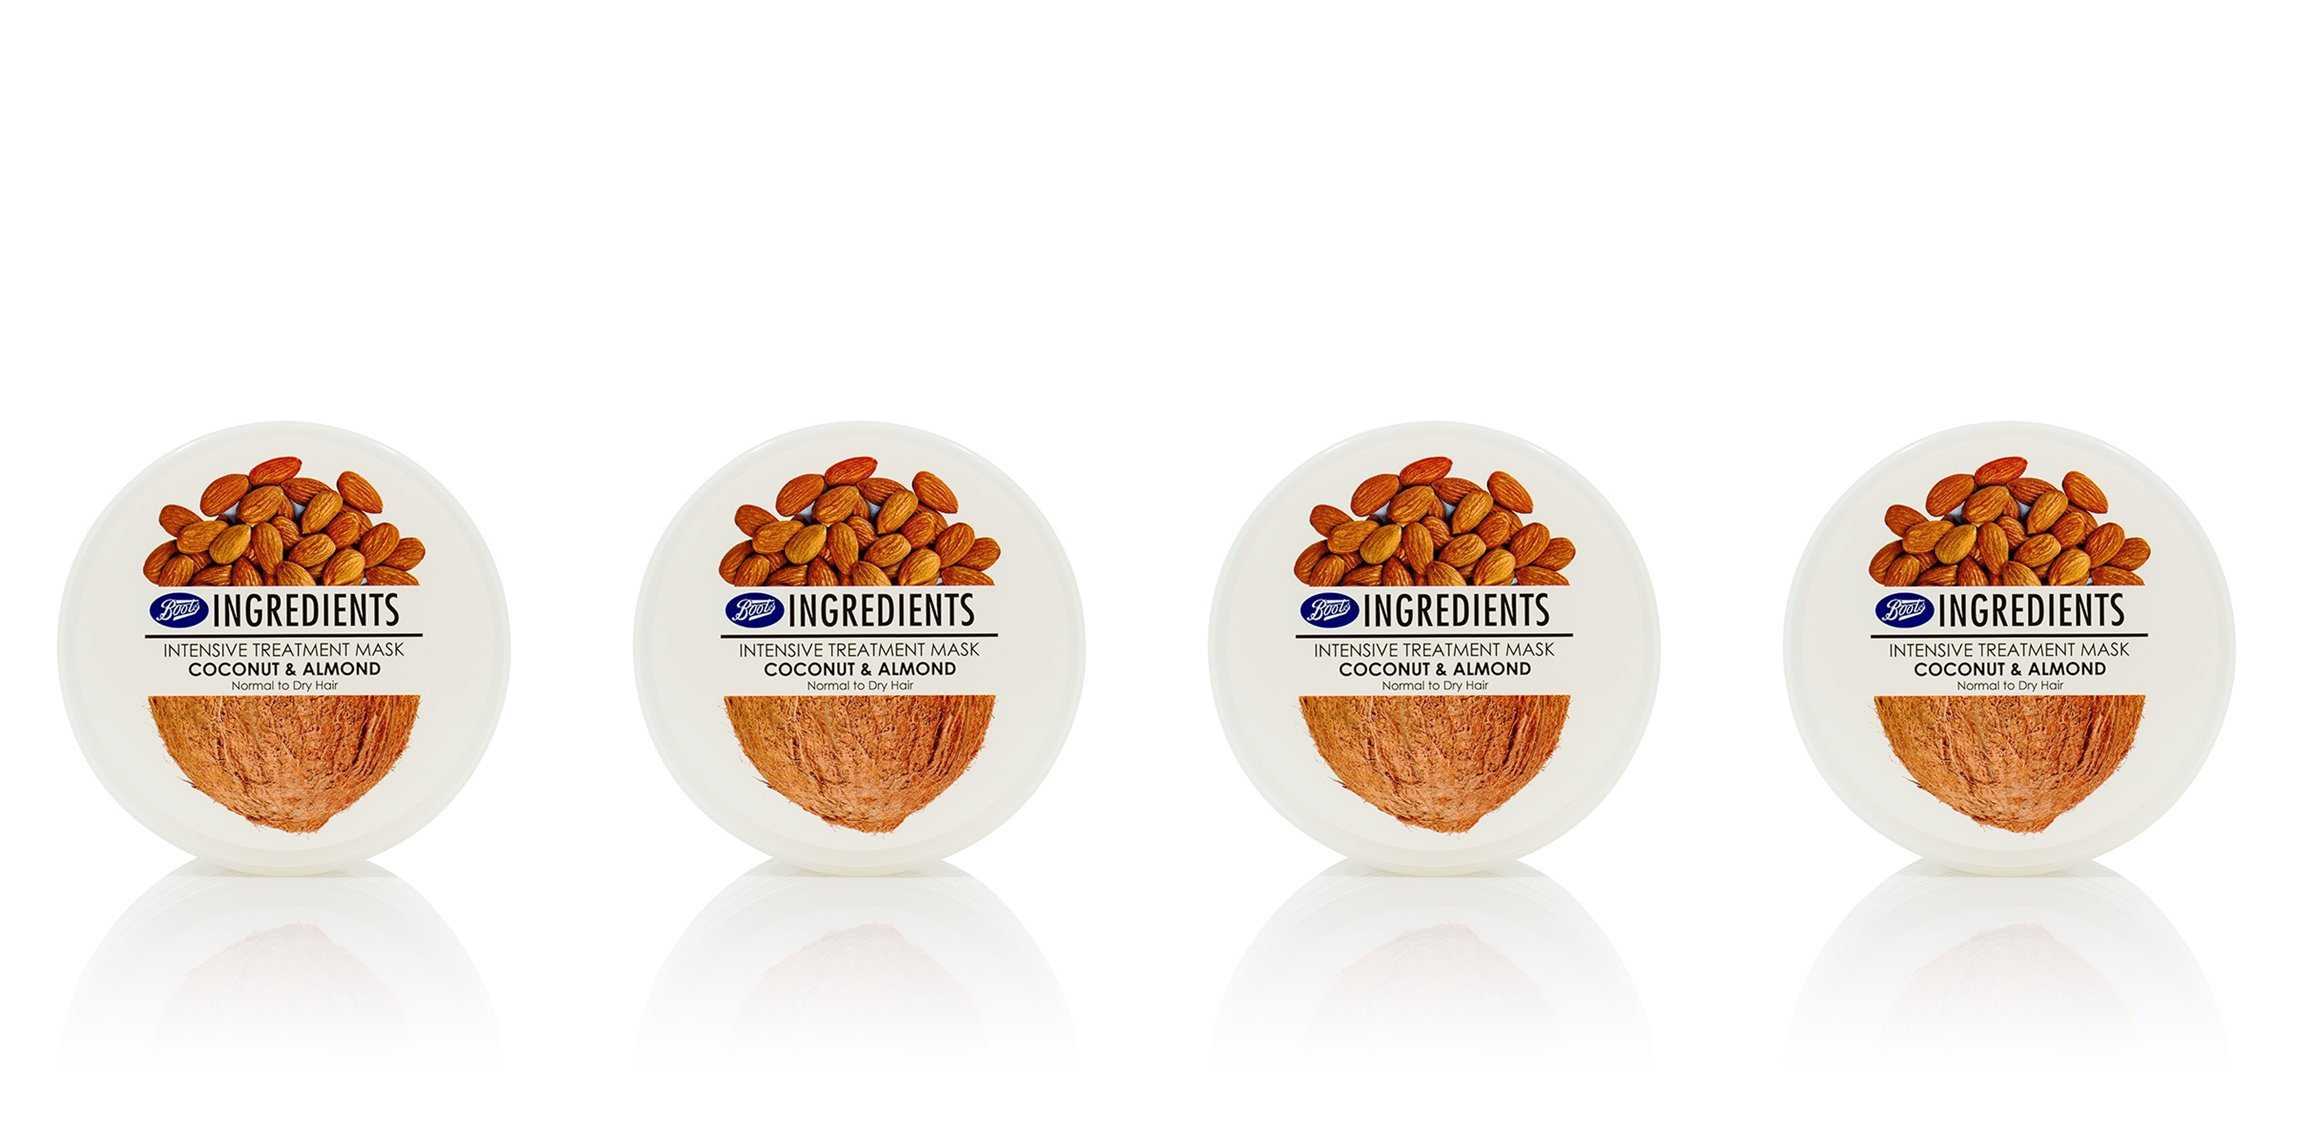 Boots Ingredients Intensive Treatment Mask Coconut & Almond 400 ml. (Pack of 4) by Boots Ingredients (Image #1)